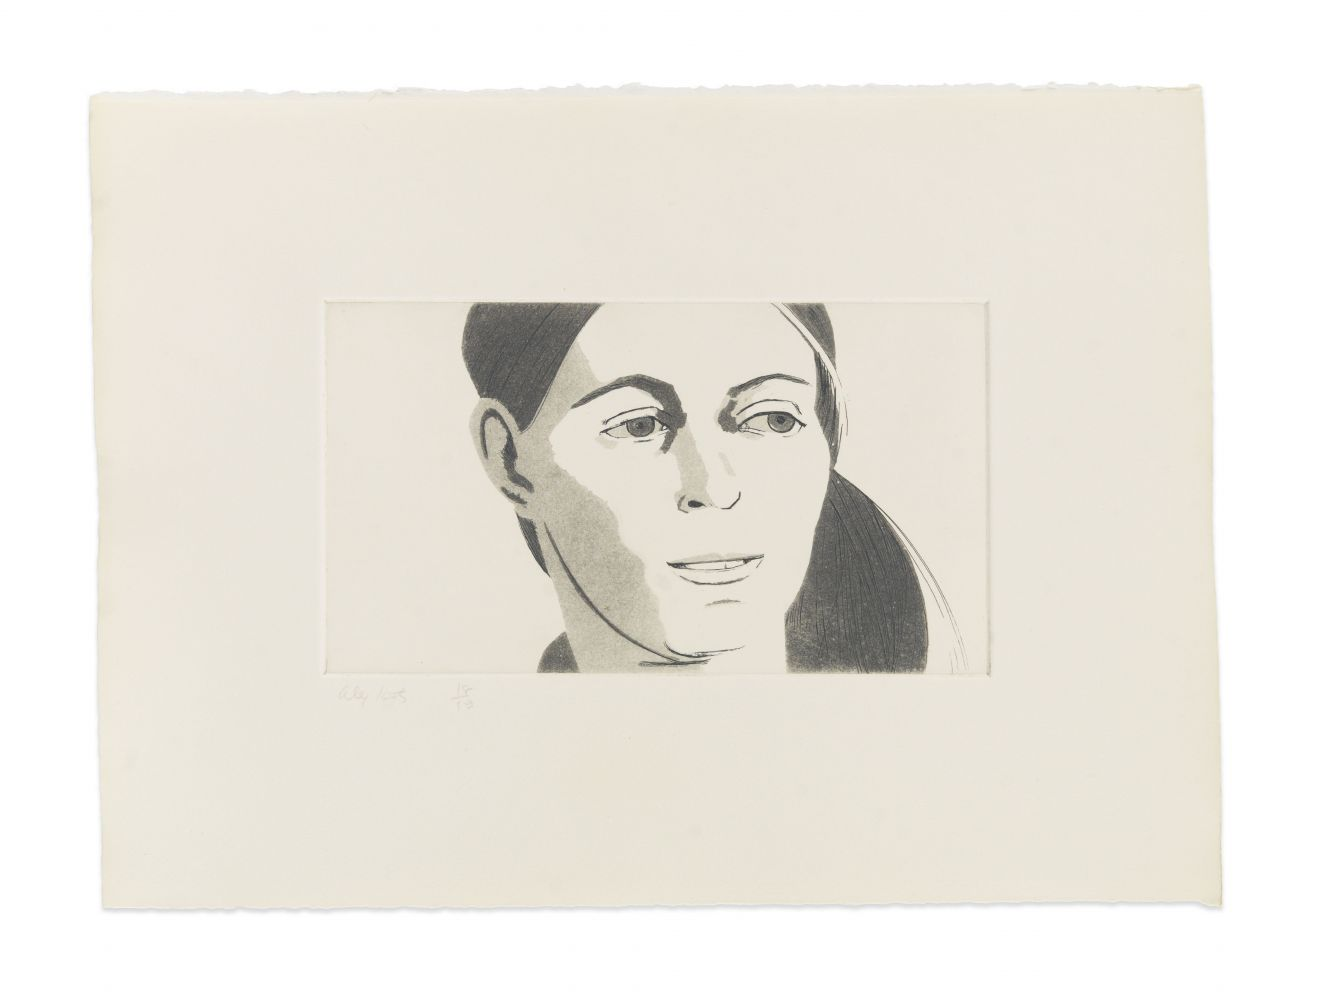 Aquatint by Alex Katz o a portrait of a woman with her hair in a side ponytail